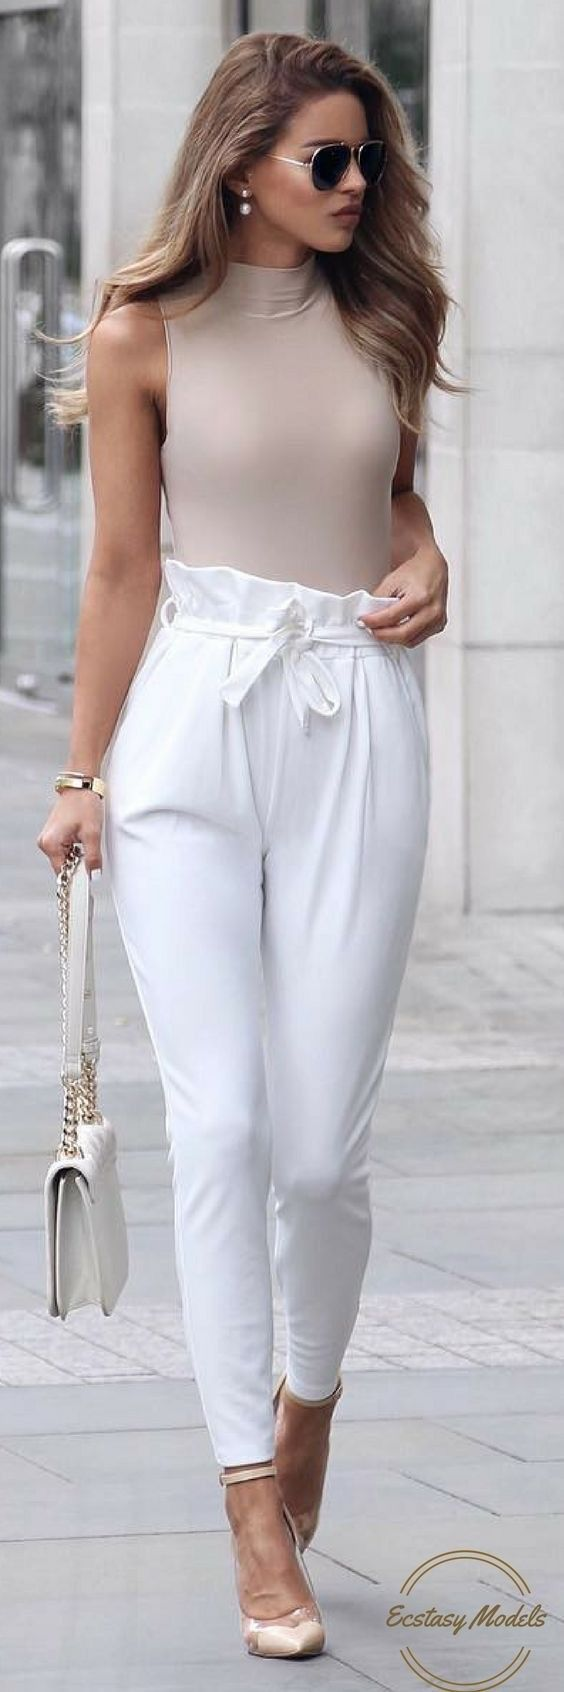 Perfect How To Style Ladies White Pants 2018 | FashionGum.com